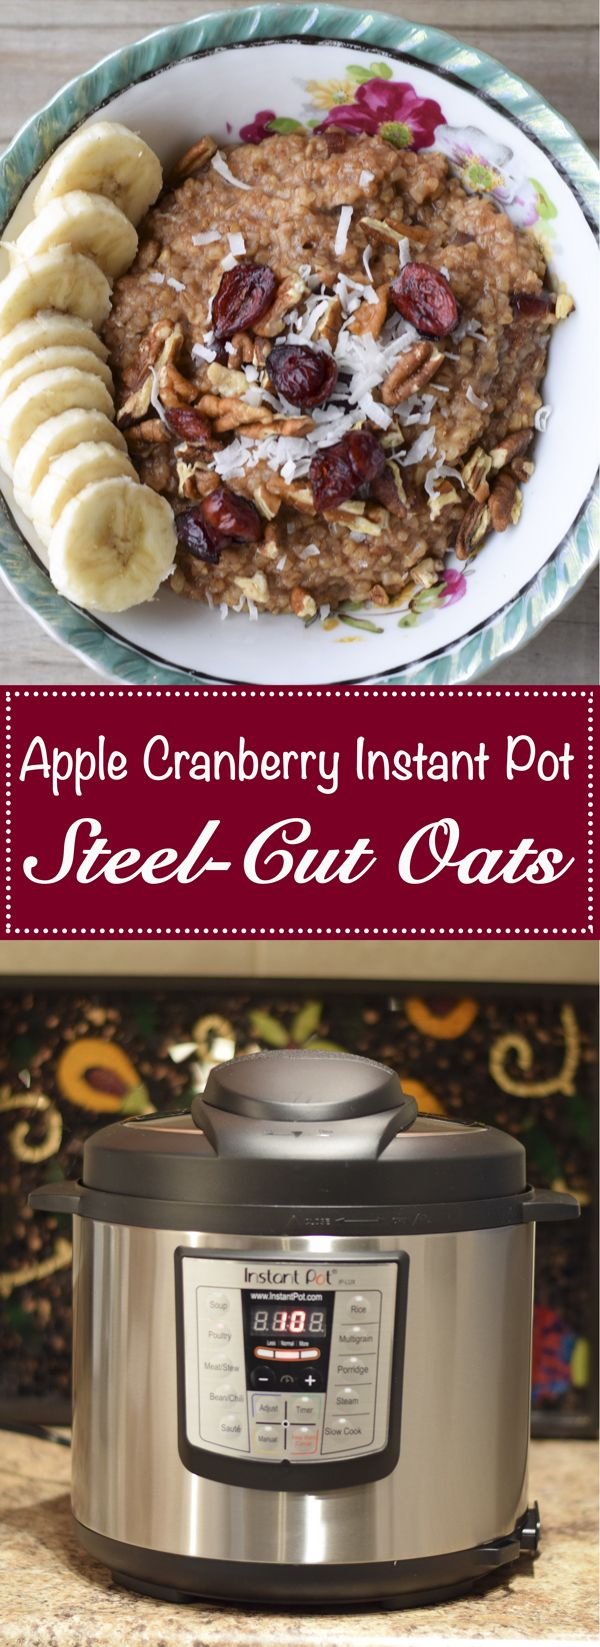 Apple Cranberry Instant Pot Steel Cut Oats  - A great breakfast recipe to make in your electric pressure cooker.